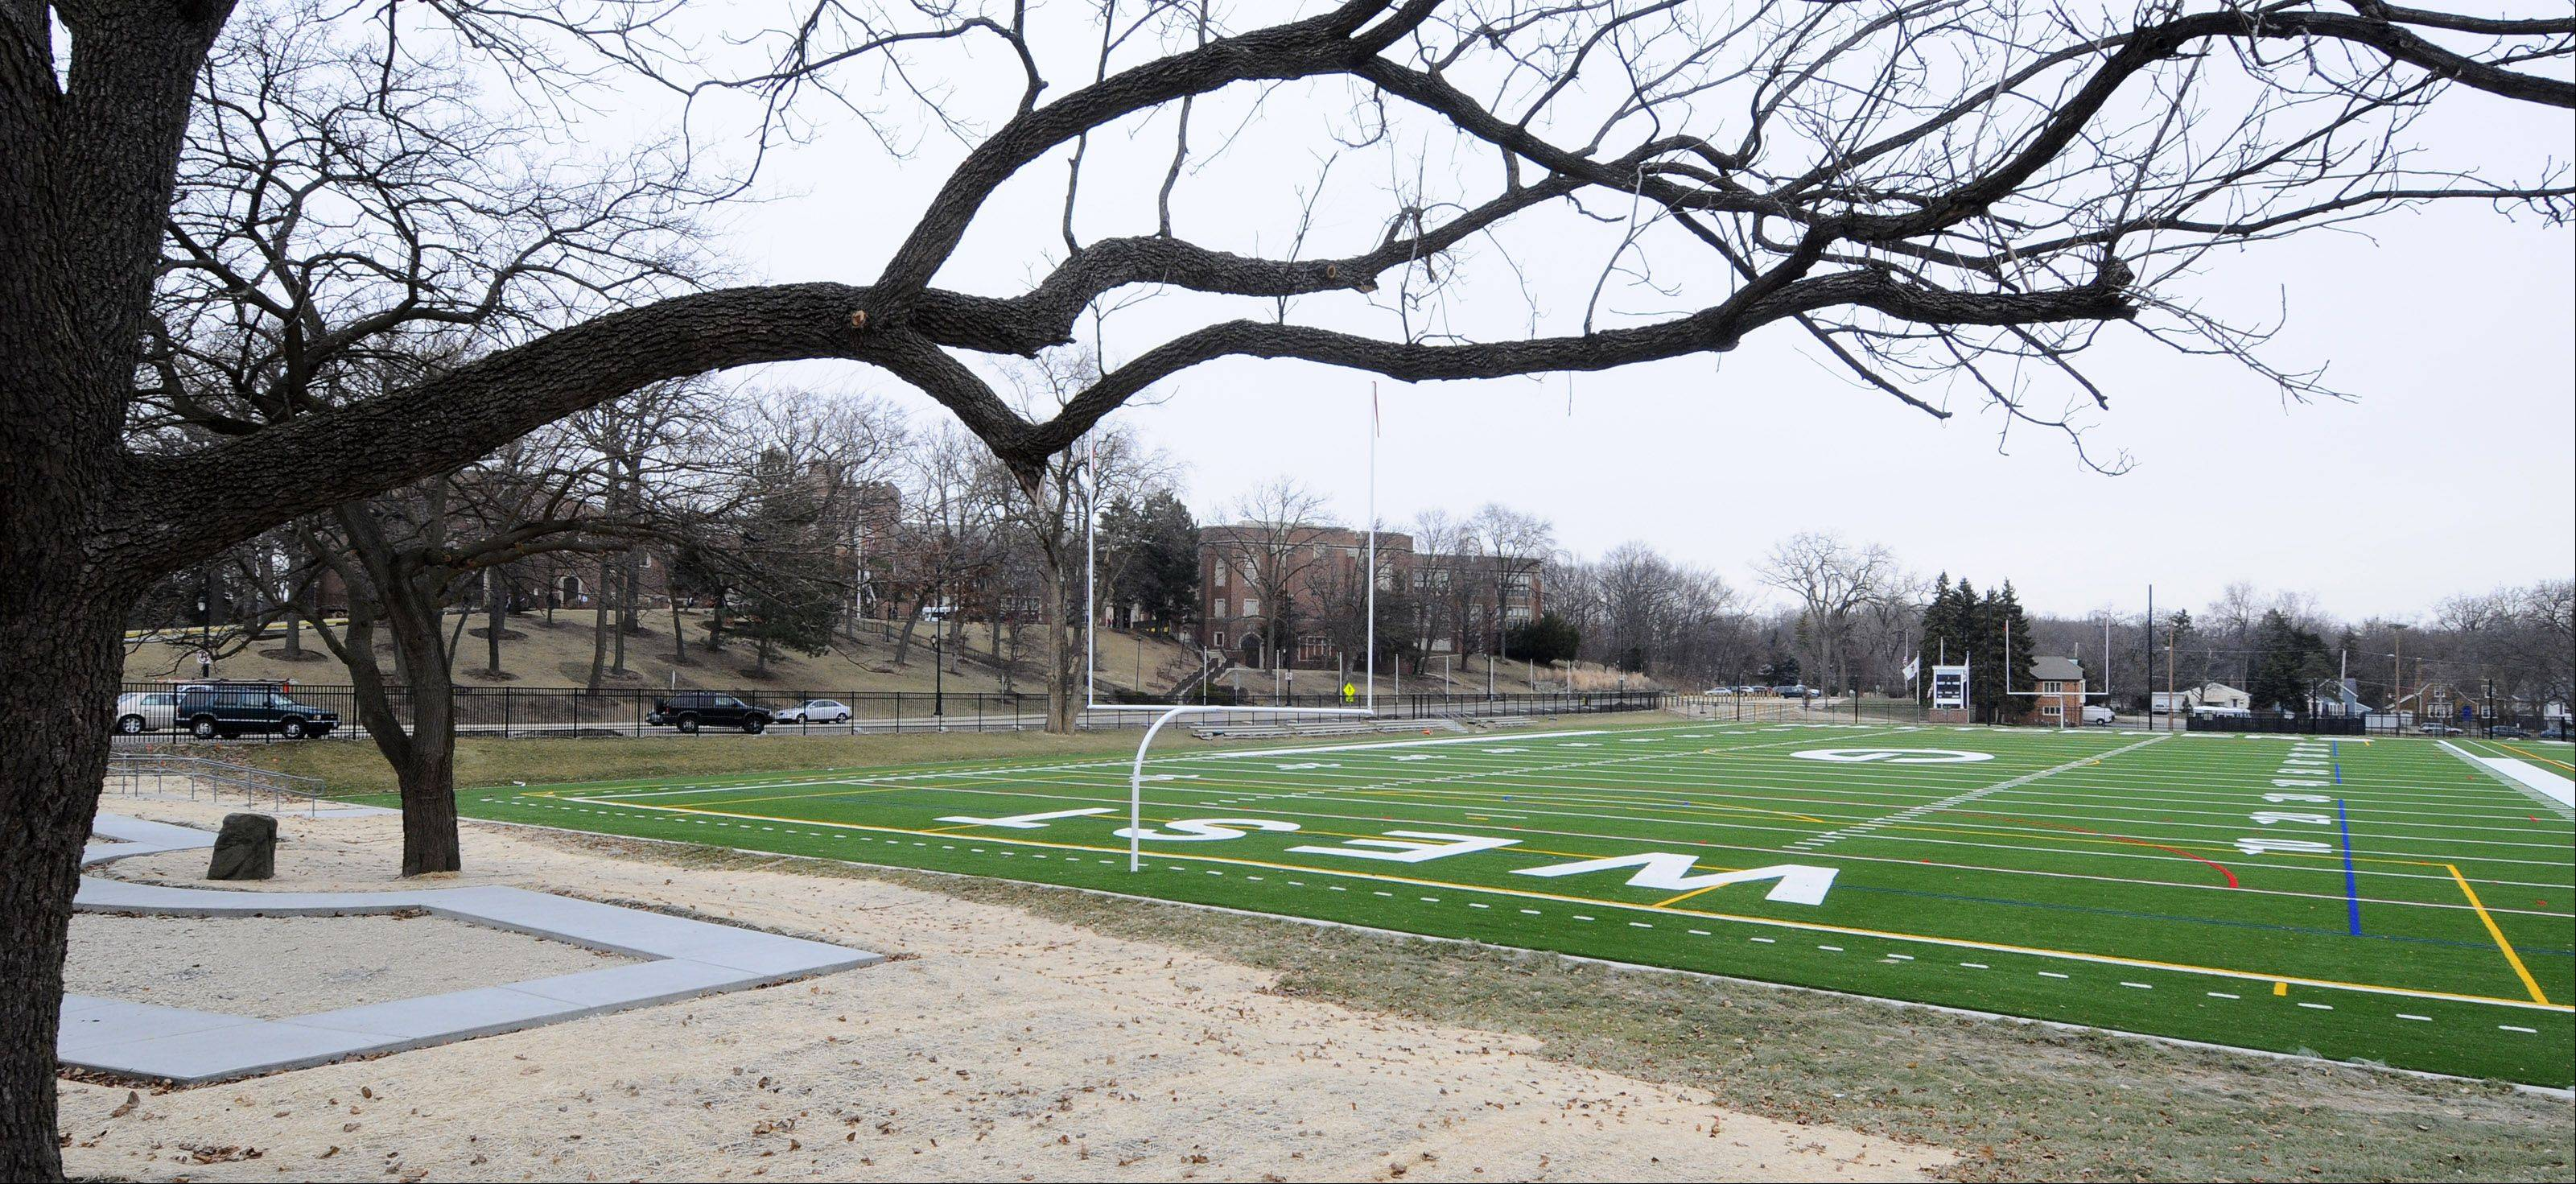 Glen Ellyn voters strongly support allowing Glenbard High School District 87 to install lights at Memorial Field, across from Glenbard West High School.